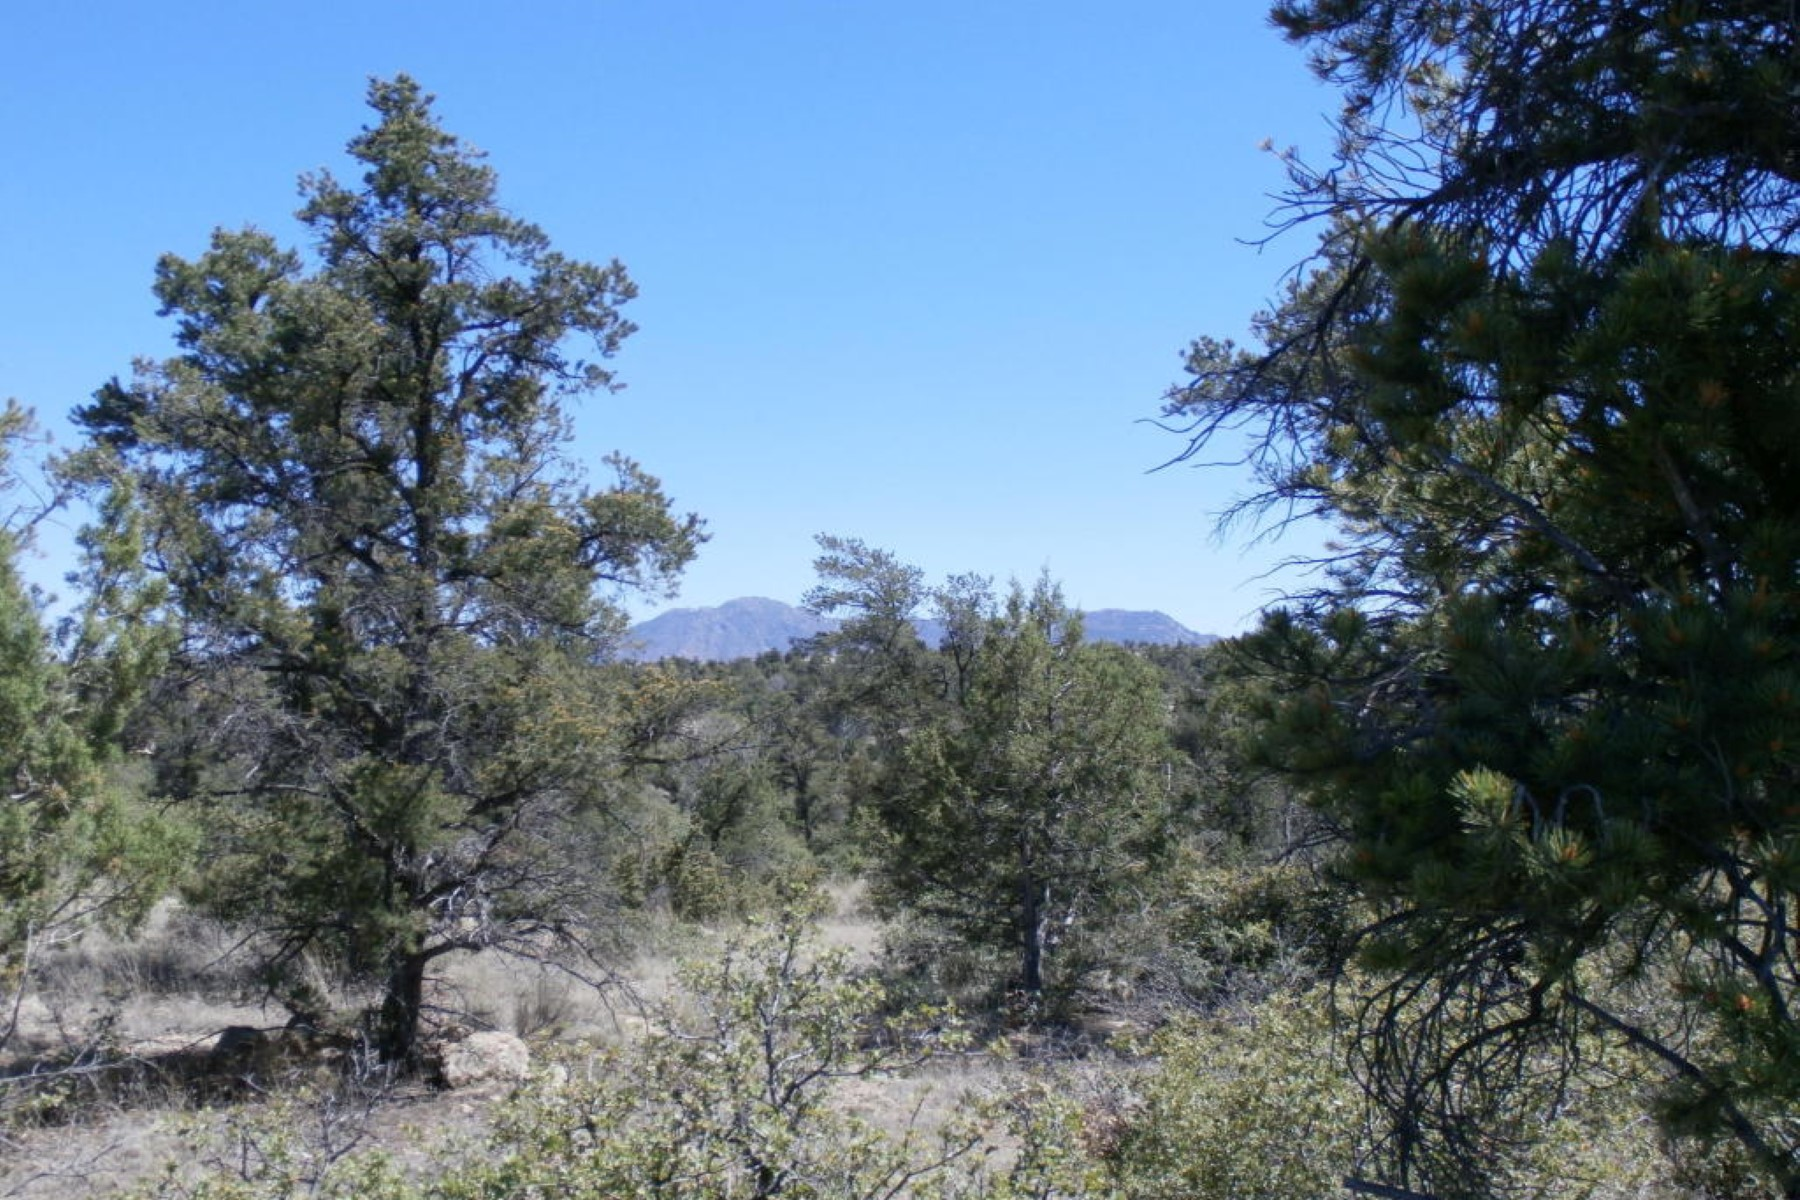 Land for Sale at One acre lot in Talking Rock Ranch with lush vegetation 15185 N Little Diamond Way Prescott, Arizona 86305 United States